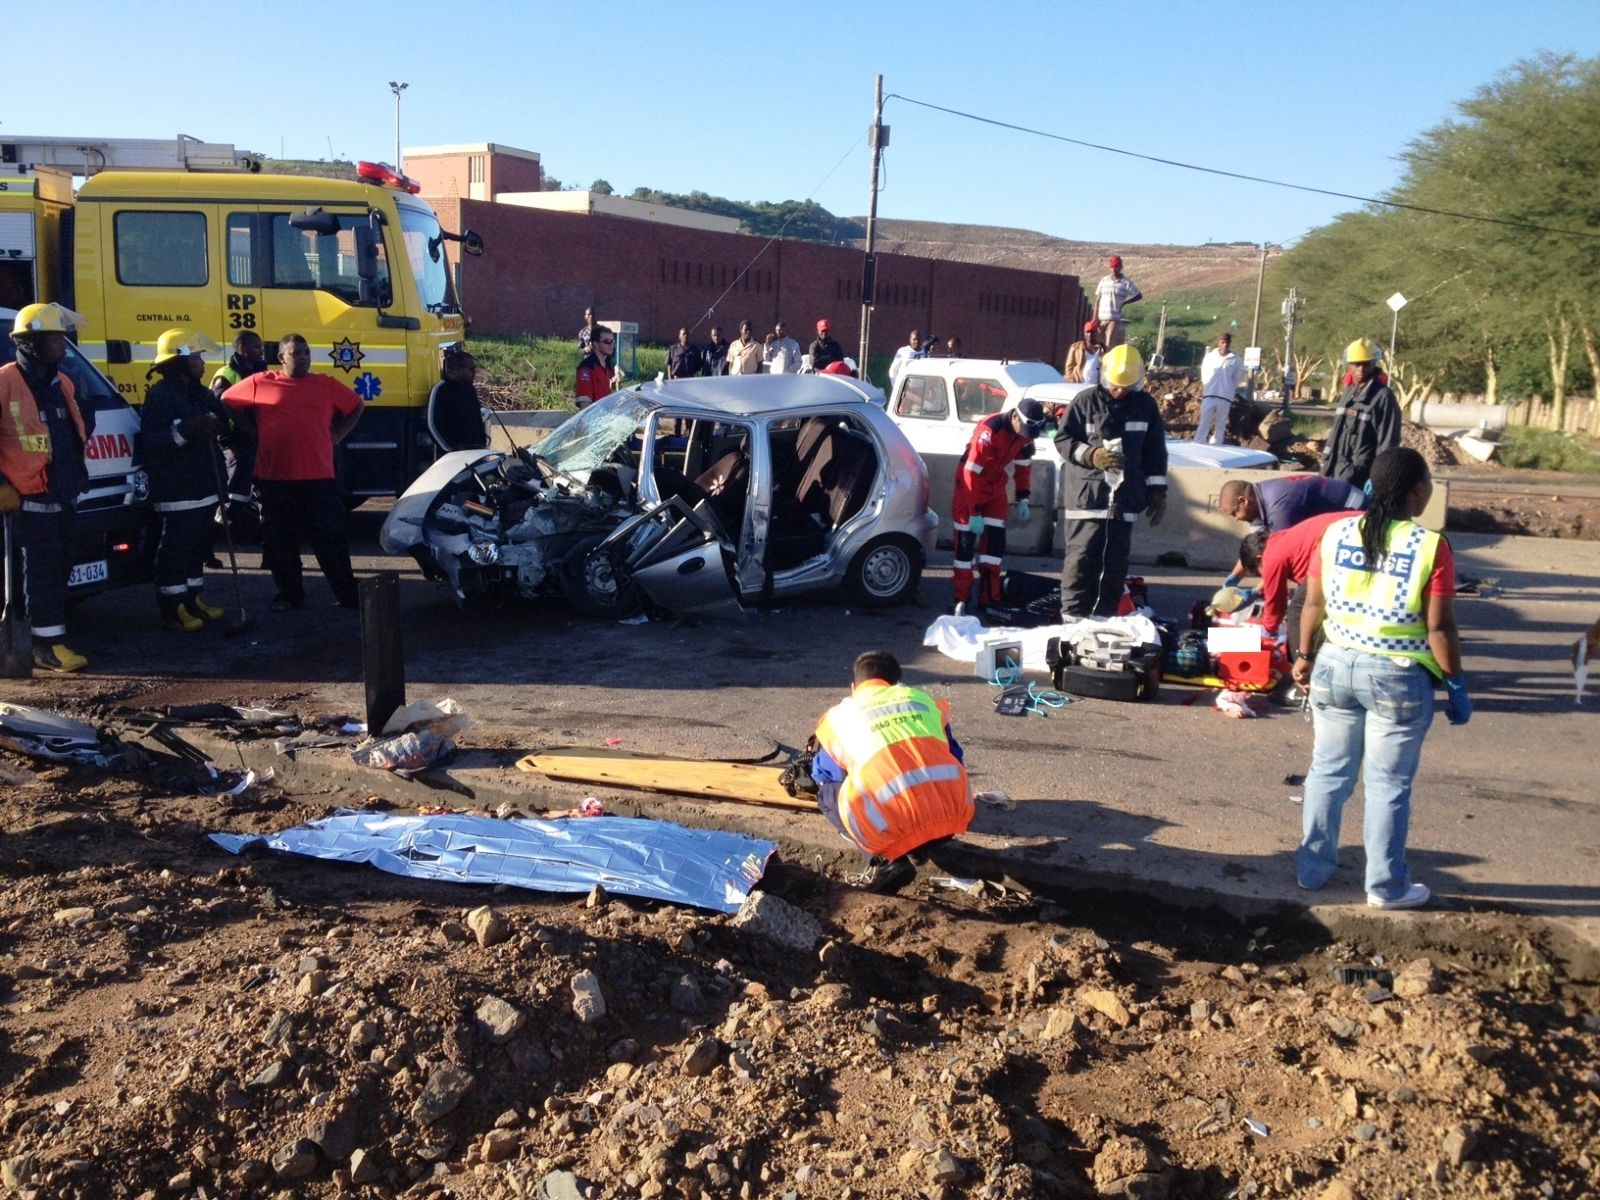 Early morning crash on Umgeni road leaves 1 dead and 4 injured, 1 ...